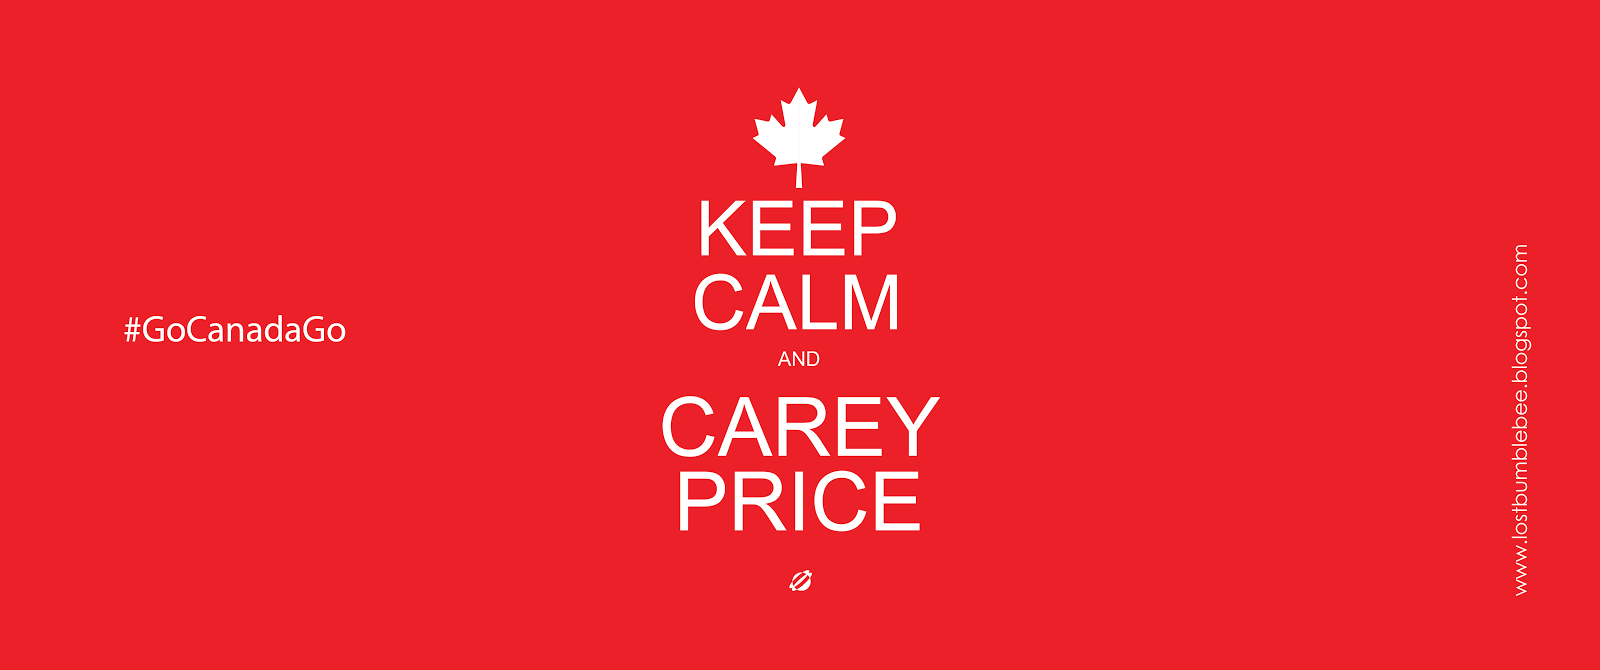 LostBumblebee ©2014 KEEP CALM AND CAREY PRICE FACEBOOK